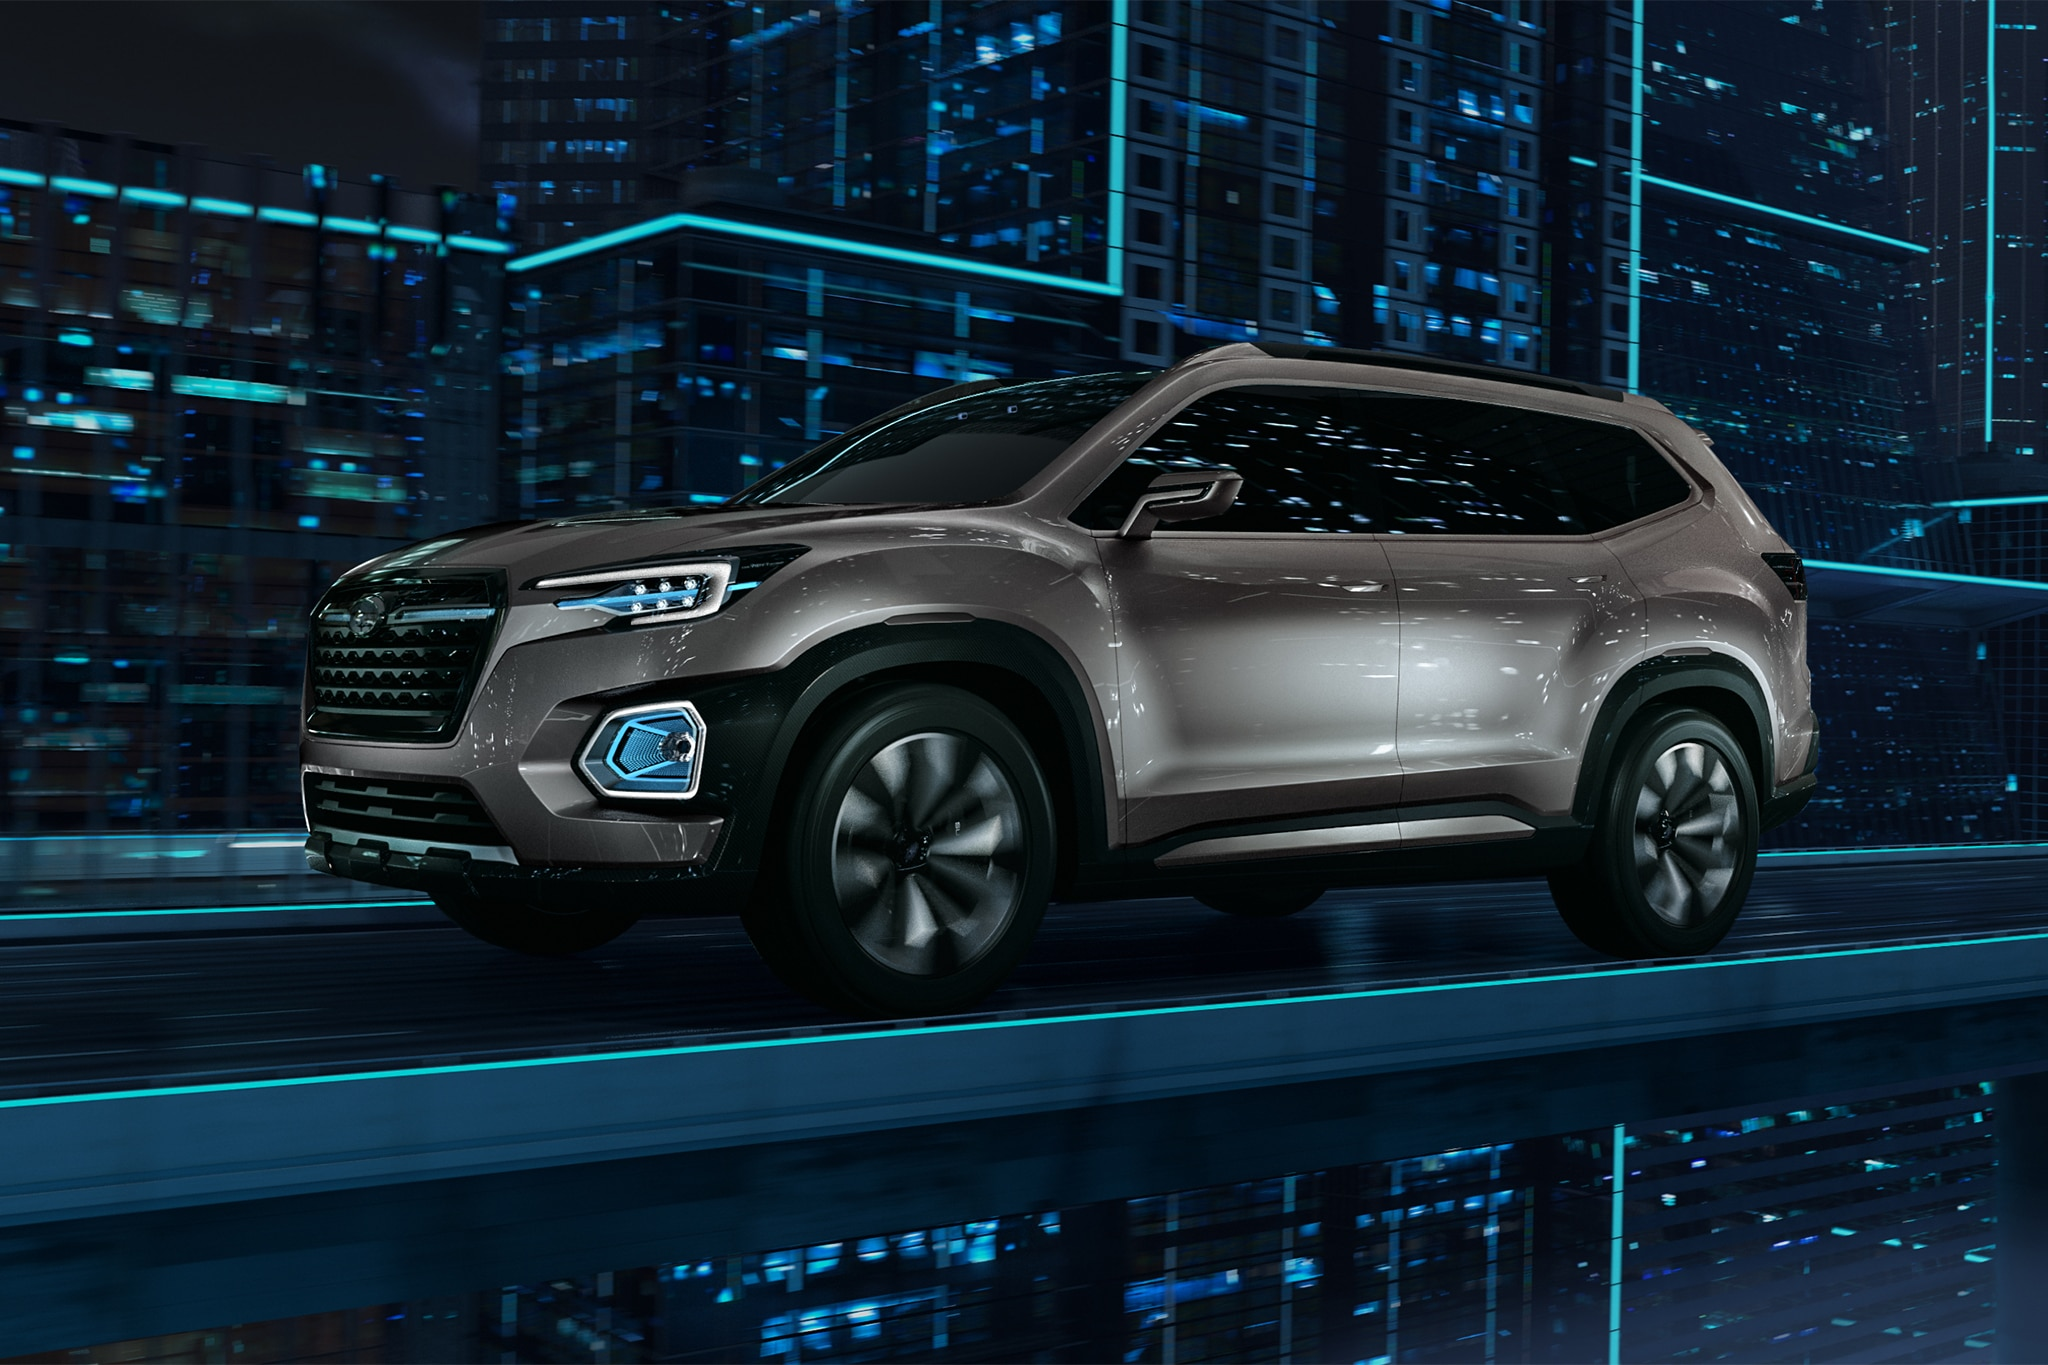 Subaru VIZIV 7 SUV Concept Front Three Quarter In Motion